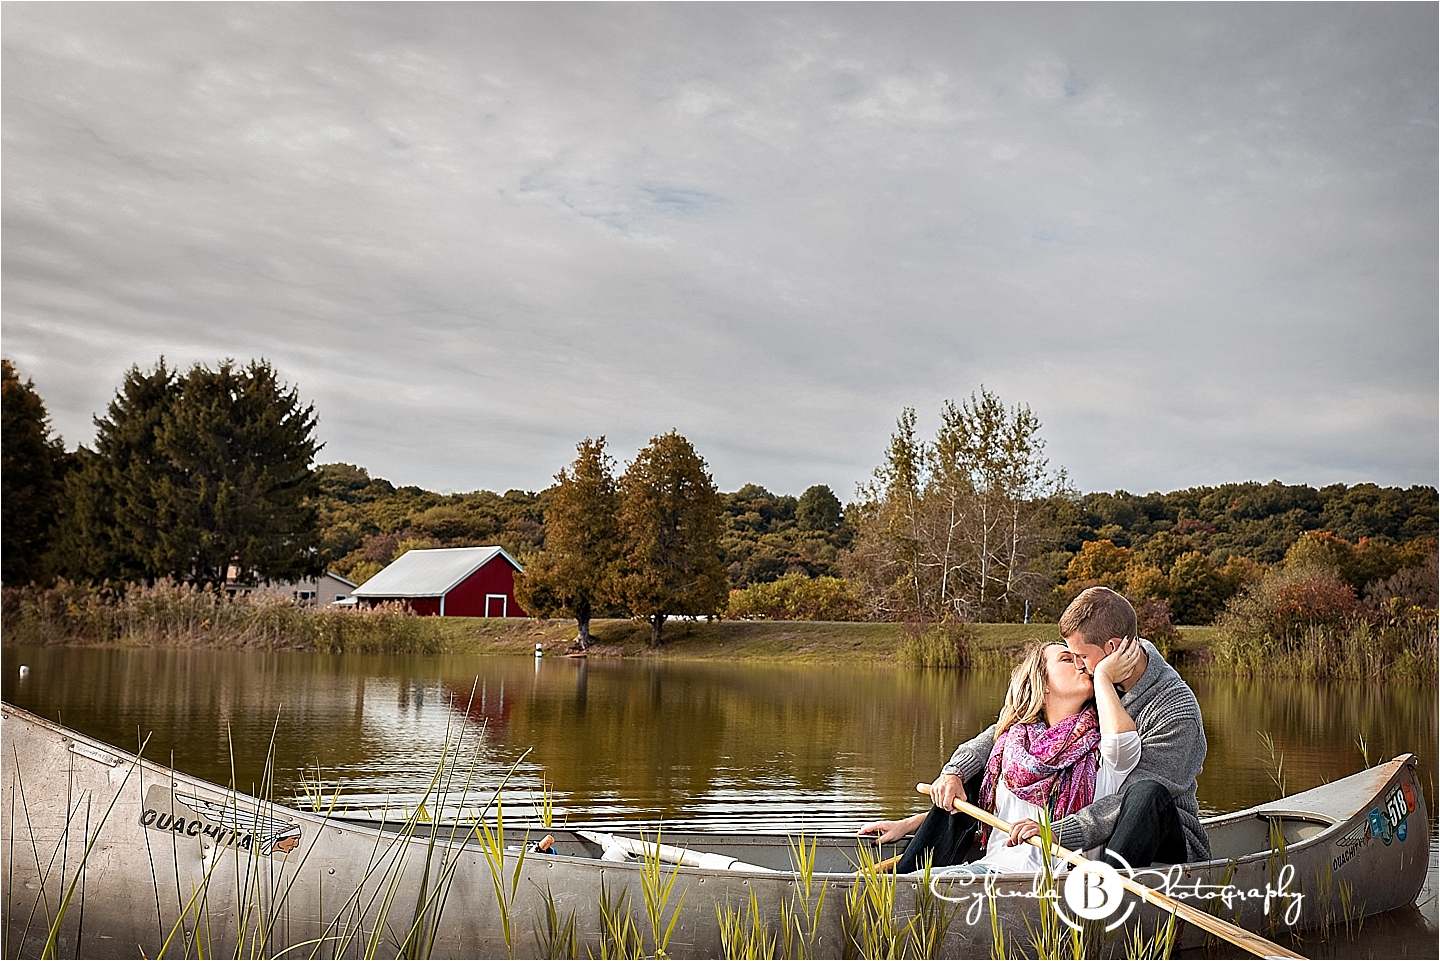 Syracuse Wedding Photographer, Cylinda B Photography, Gillie Lake, Engagement Session, Syracuse